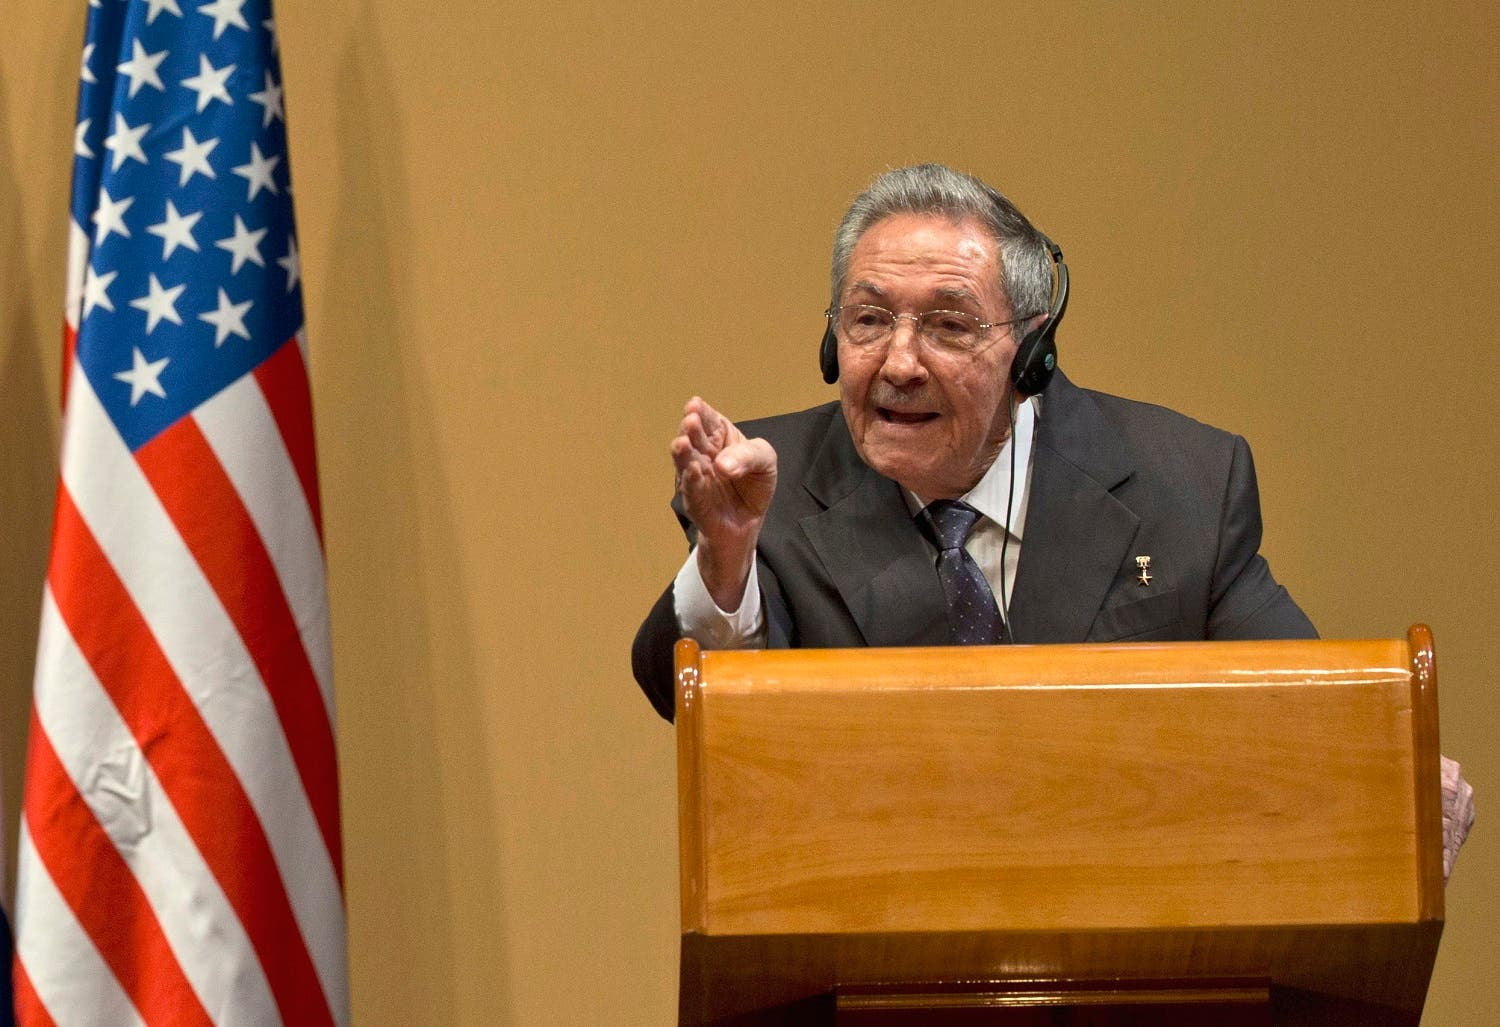 Cuba's President Raul Castro gestures as he speaks during a press conference after a joint statement with US President Barack Obama in Havana, Cuba, Monday, March 21, 2016. (AP)